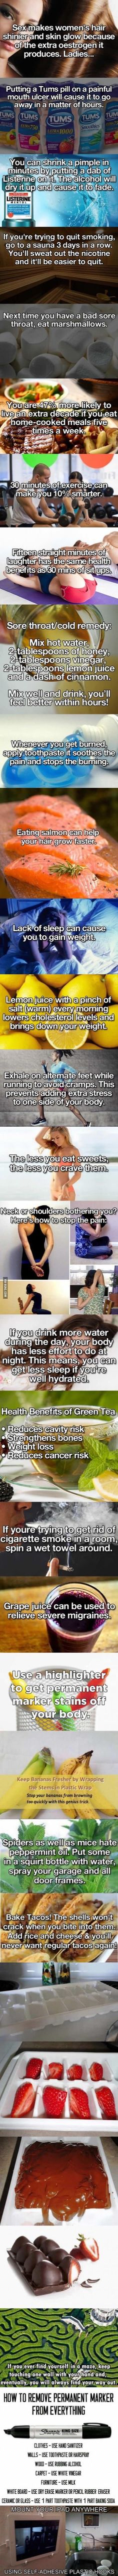 Some tips for you my dear 9Gagers! - 9GAG